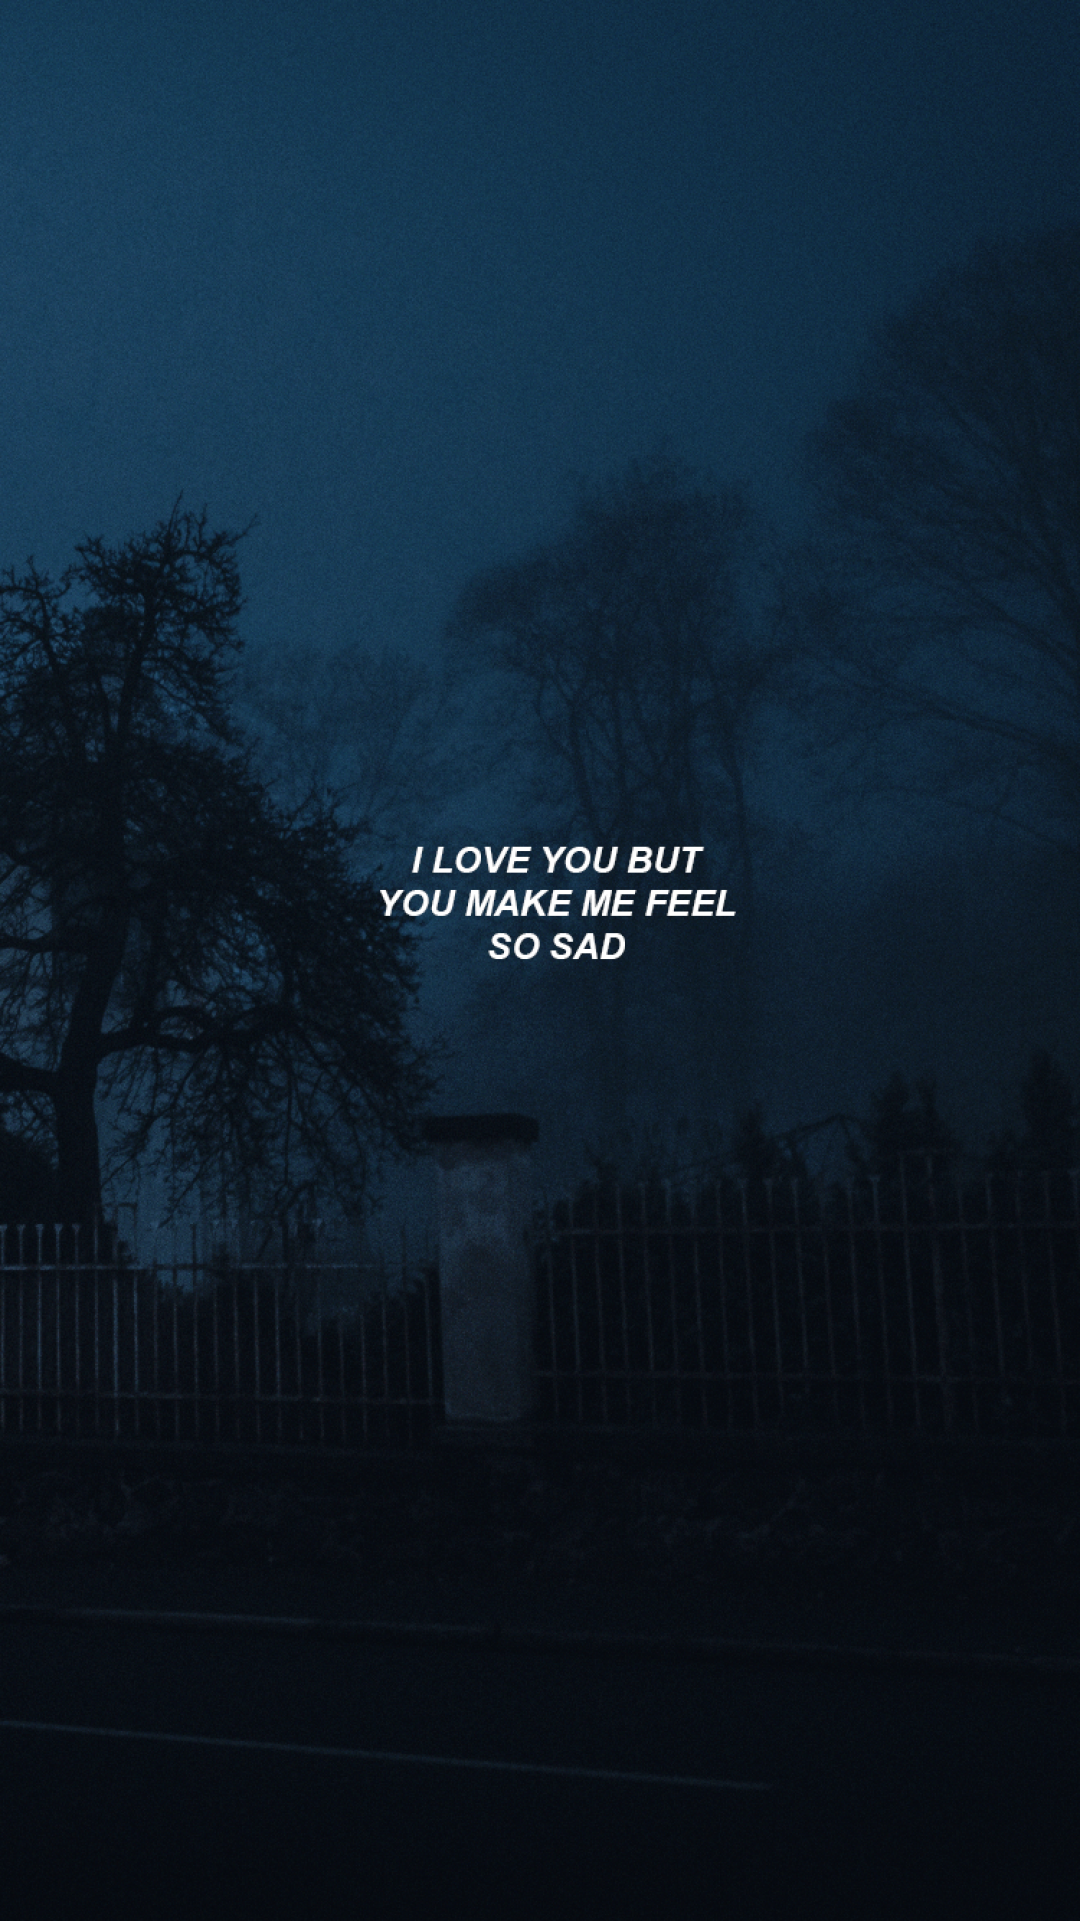 45 Sad Aesthetic Tumblr Images Hd Photos 1080p Wallpapers Android Iphone 2020